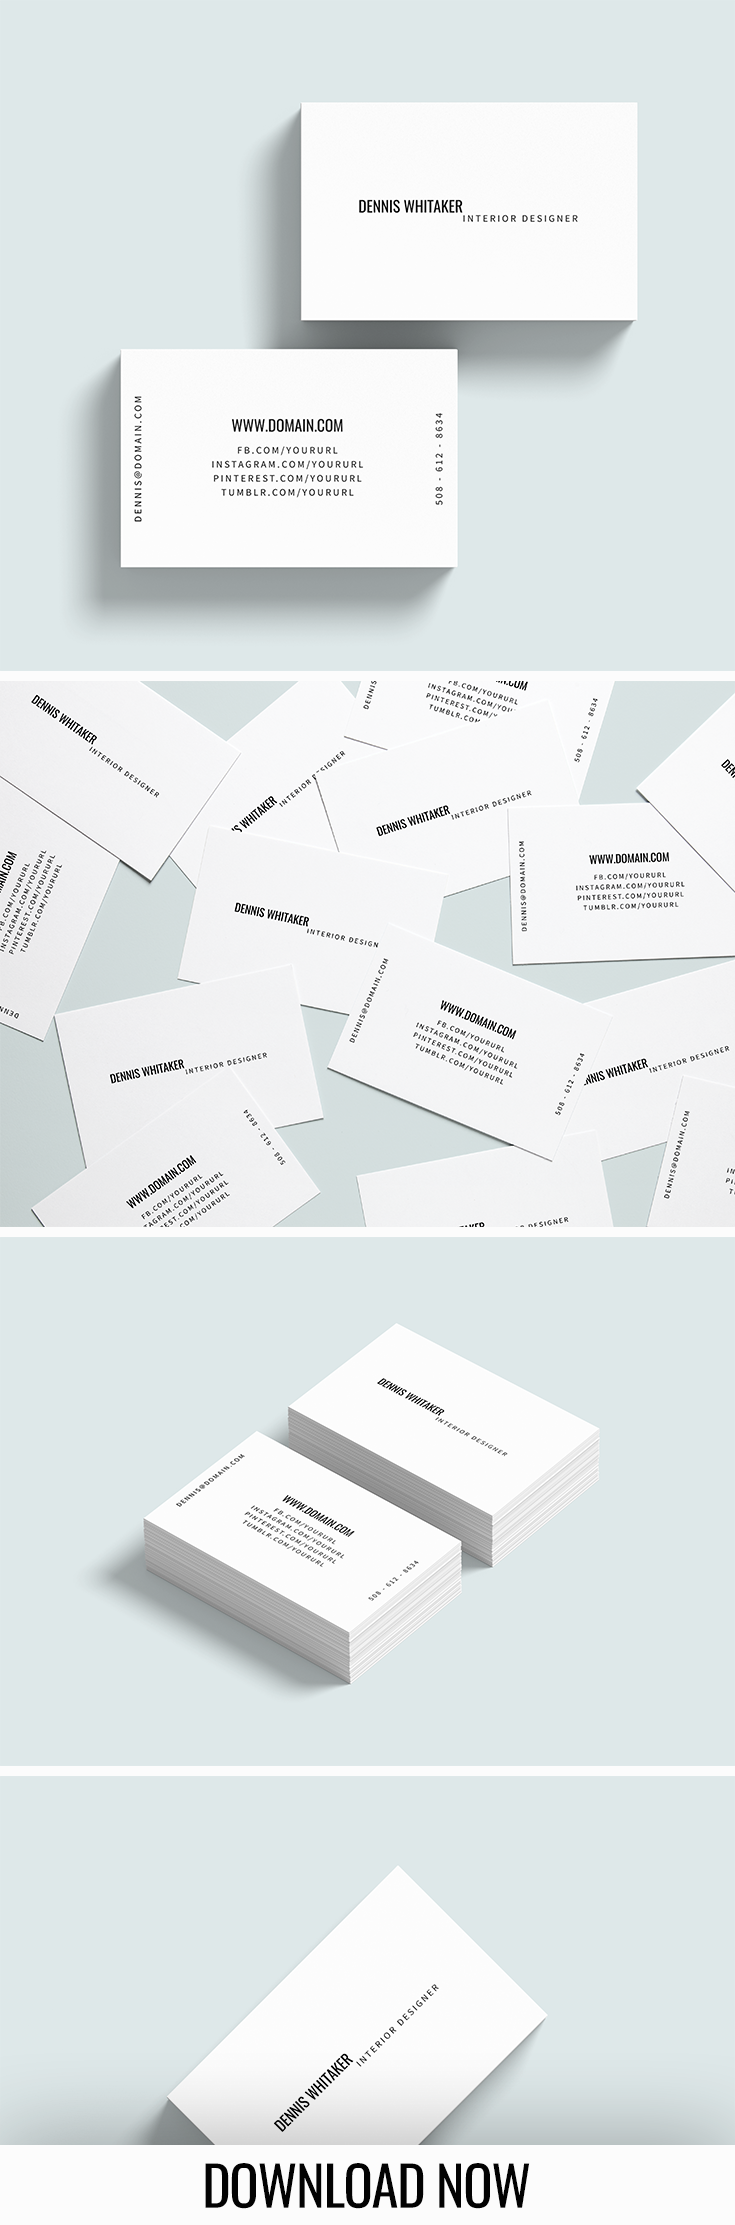 Dennis Whitaker Business Card Template 85mm X 55mm Business Card Design Minimal Business Card Text Business Card Inspiration